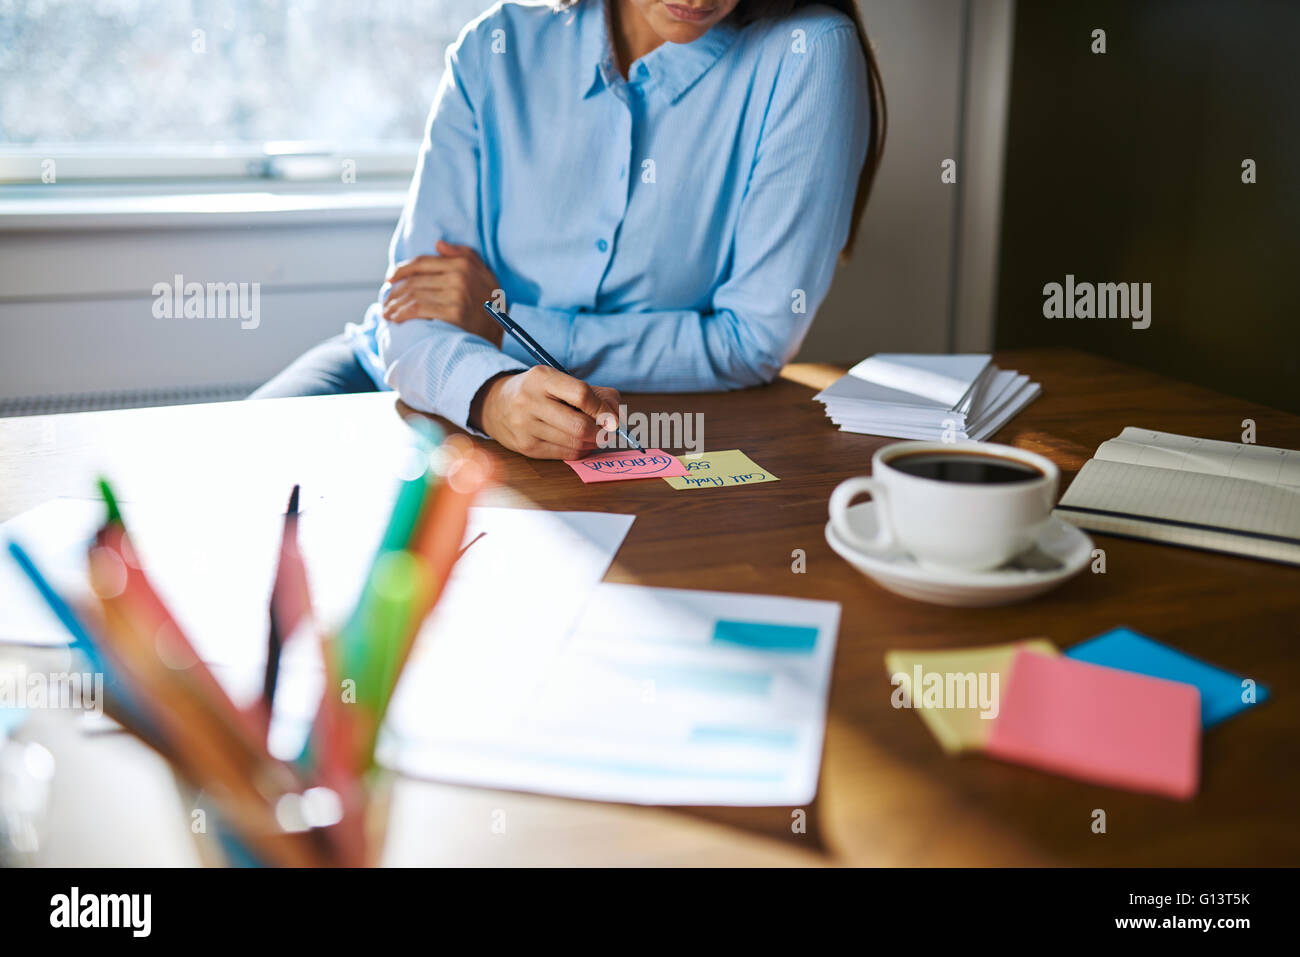 Female small business owner working from home sitting at her desk making notes on sticky memo cards , close up view - Stock Image